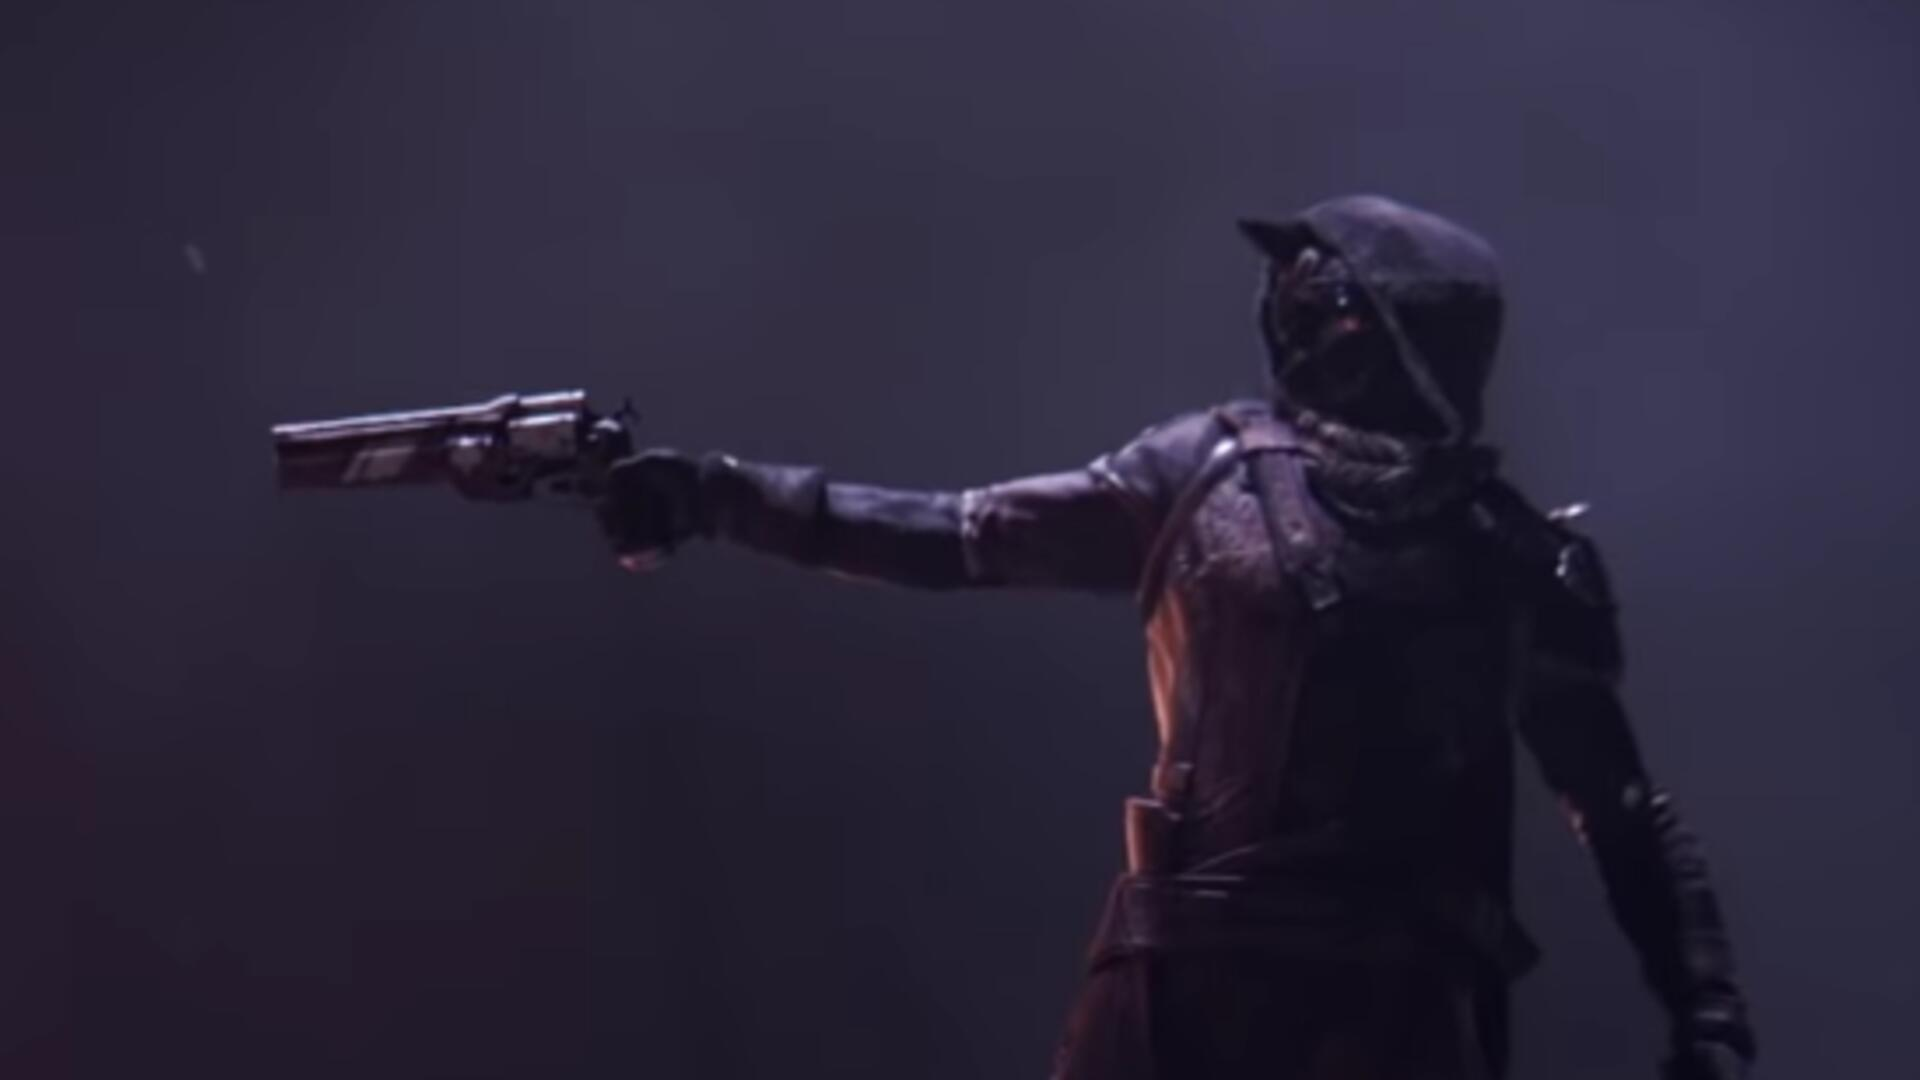 Destiny 2 Reveals Cayde-6's Final Moments, Details Free Gambit Trial for All Players